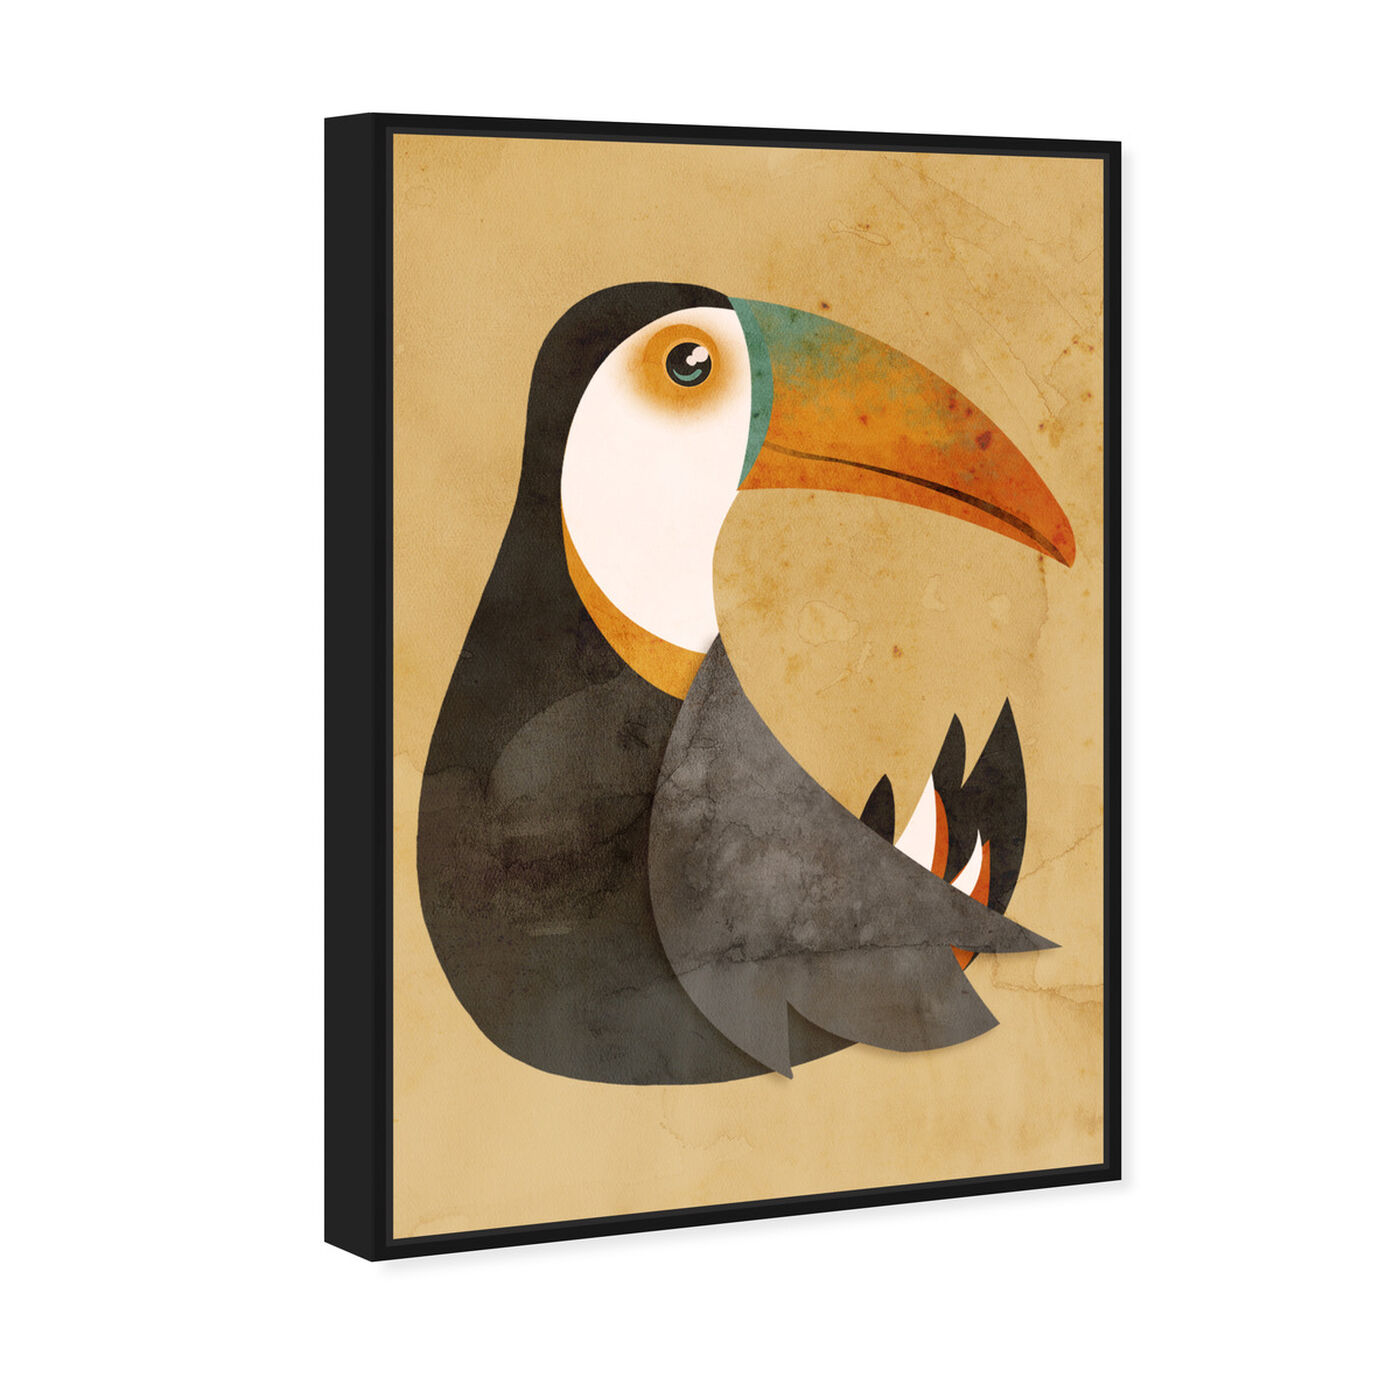 Angled view of Vibrant Toucan featuring animals and birds art.